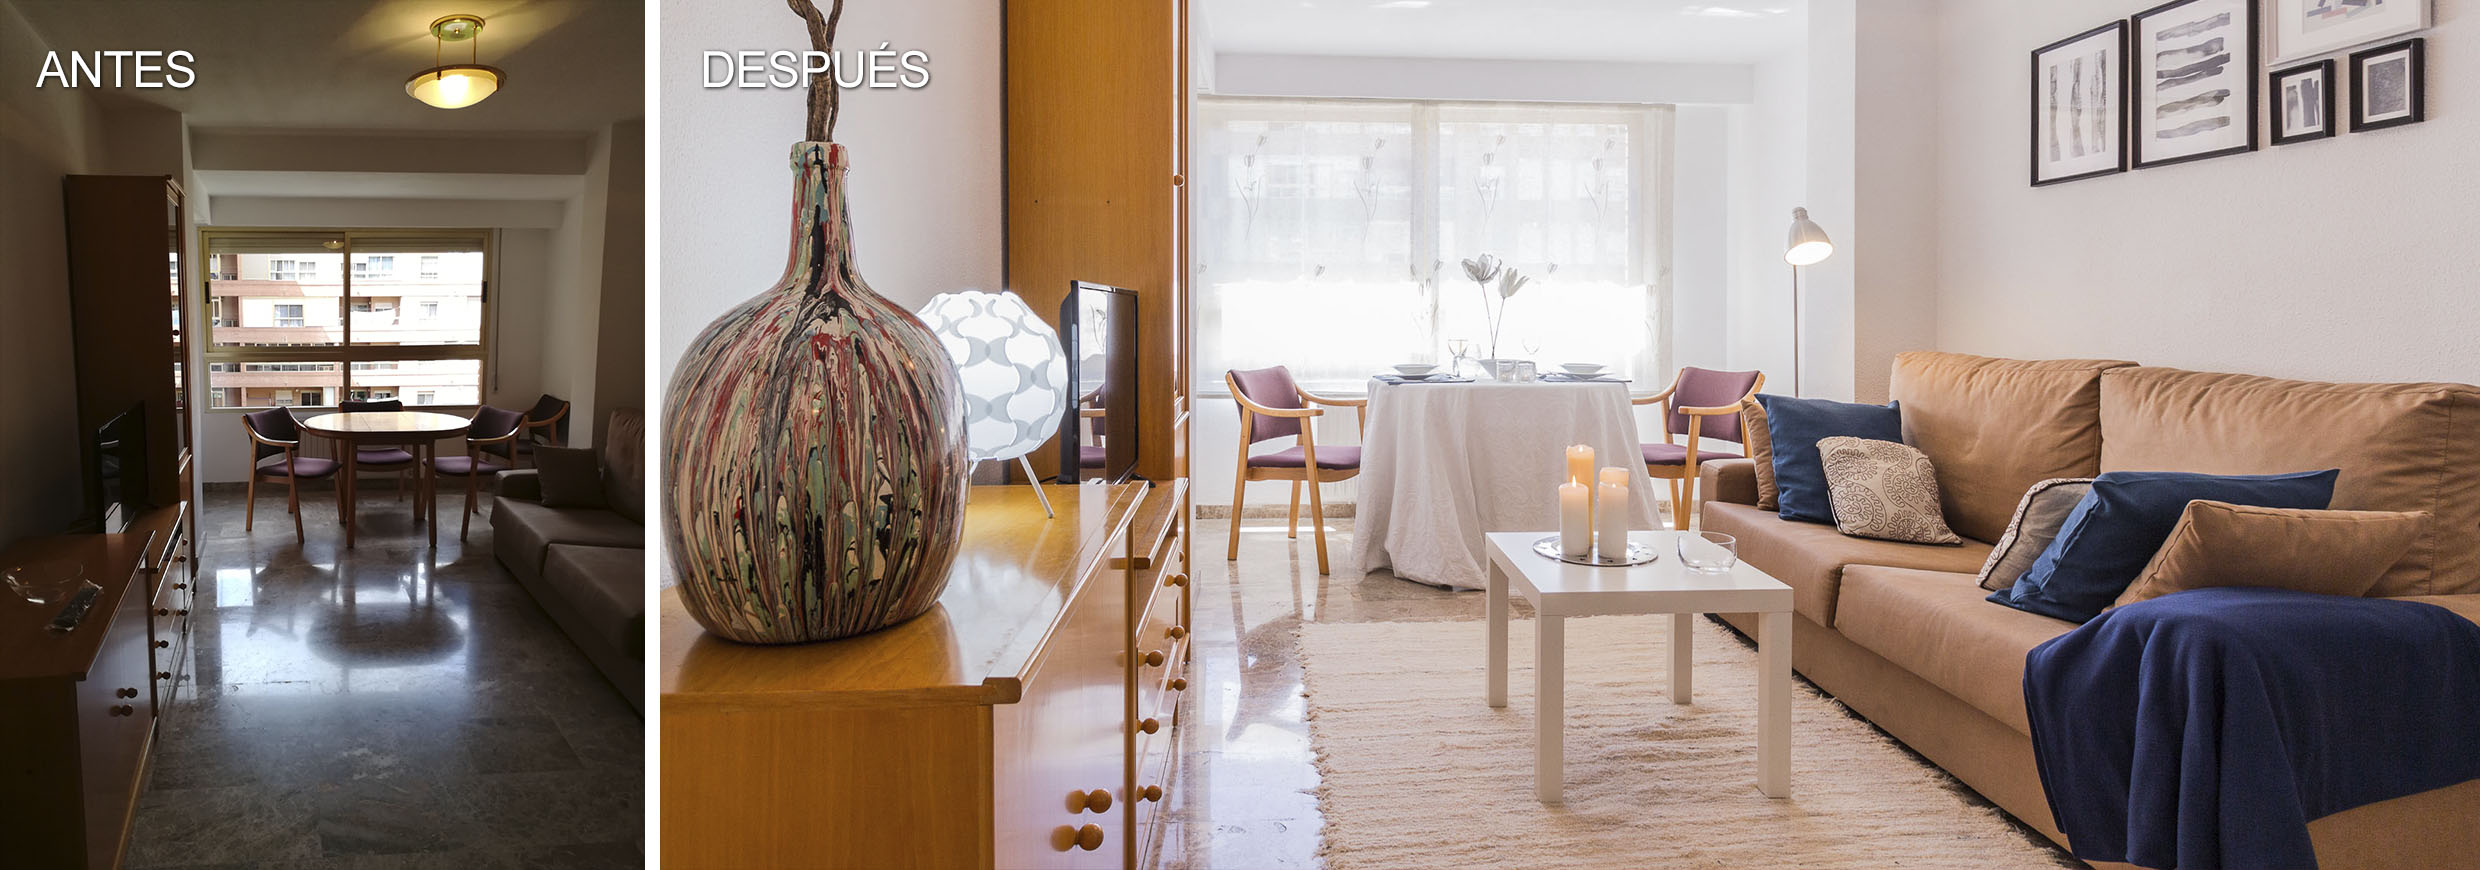 Home Staging Piso en Valencia